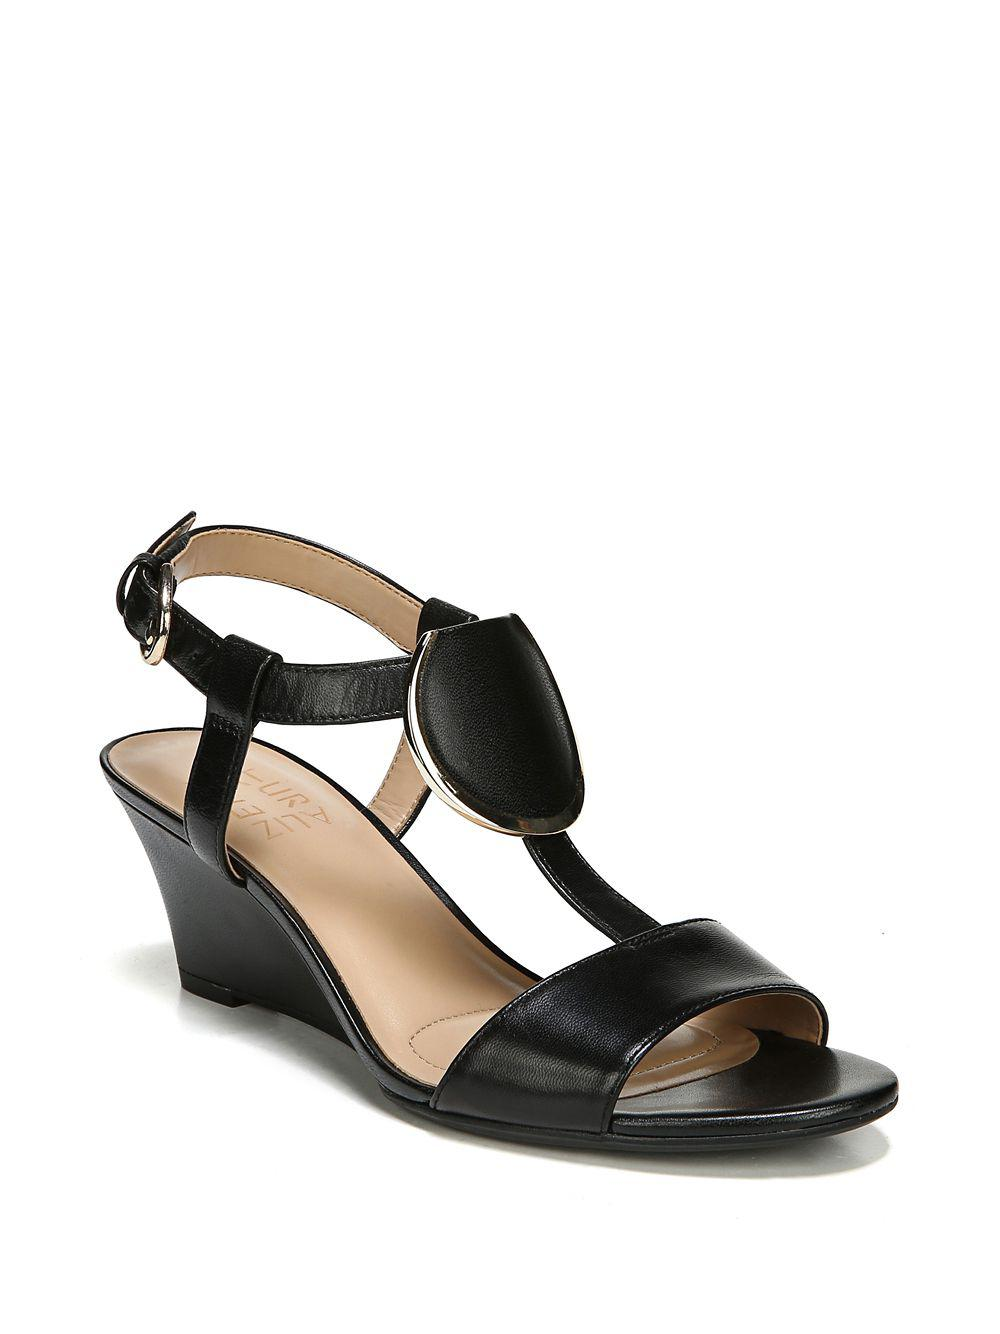 e4b9fdd16c11 Naturalizer Talli Leather T-strap Wedge Sandals in Black - Lyst